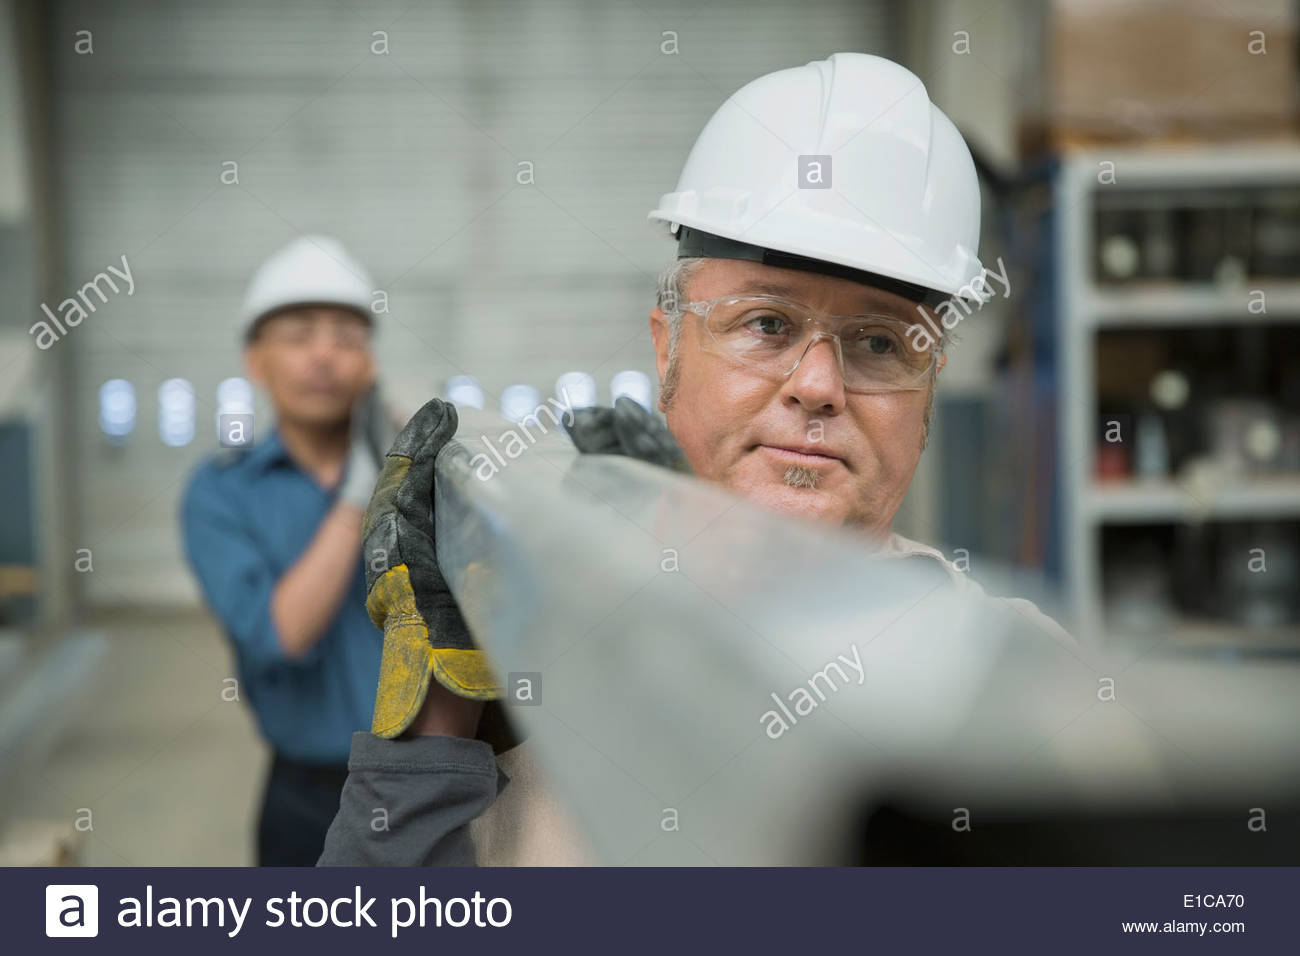 Workers carrying steel beam in manufacturing plant - Stock Image